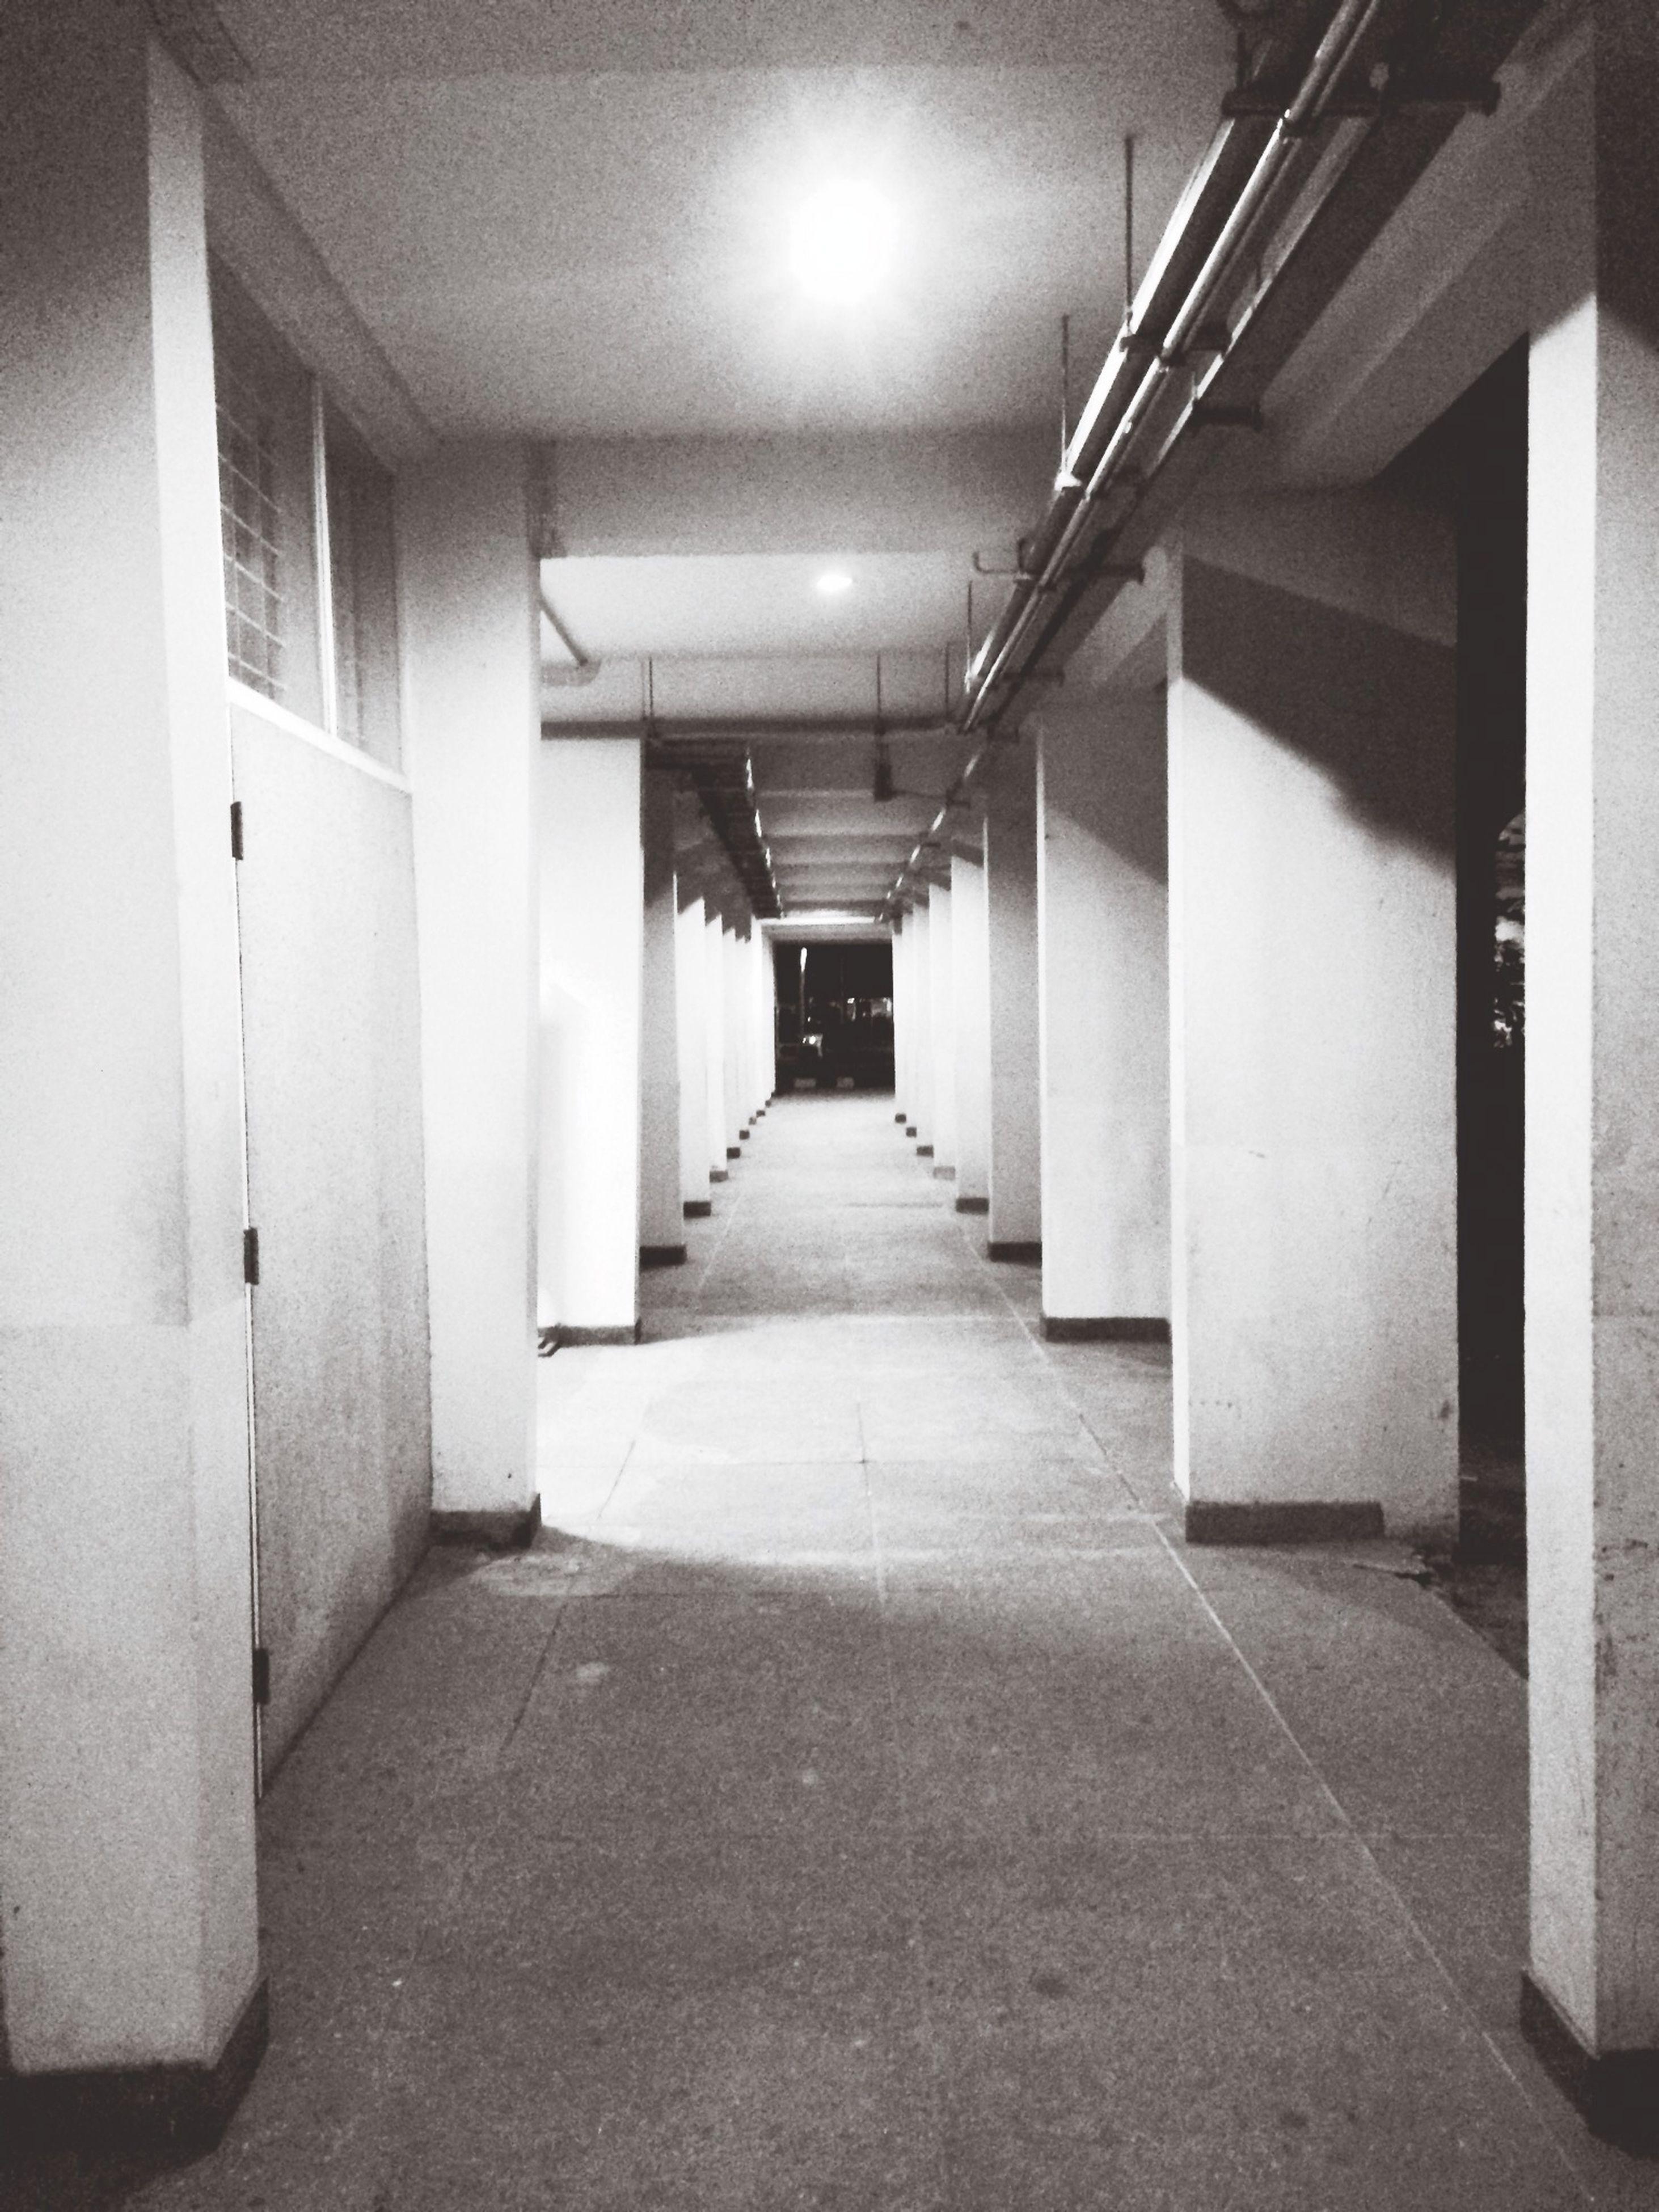 architecture, the way forward, built structure, corridor, indoors, diminishing perspective, vanishing point, narrow, empty, in a row, architectural column, illuminated, building, long, lighting equipment, building exterior, walkway, column, no people, ceiling